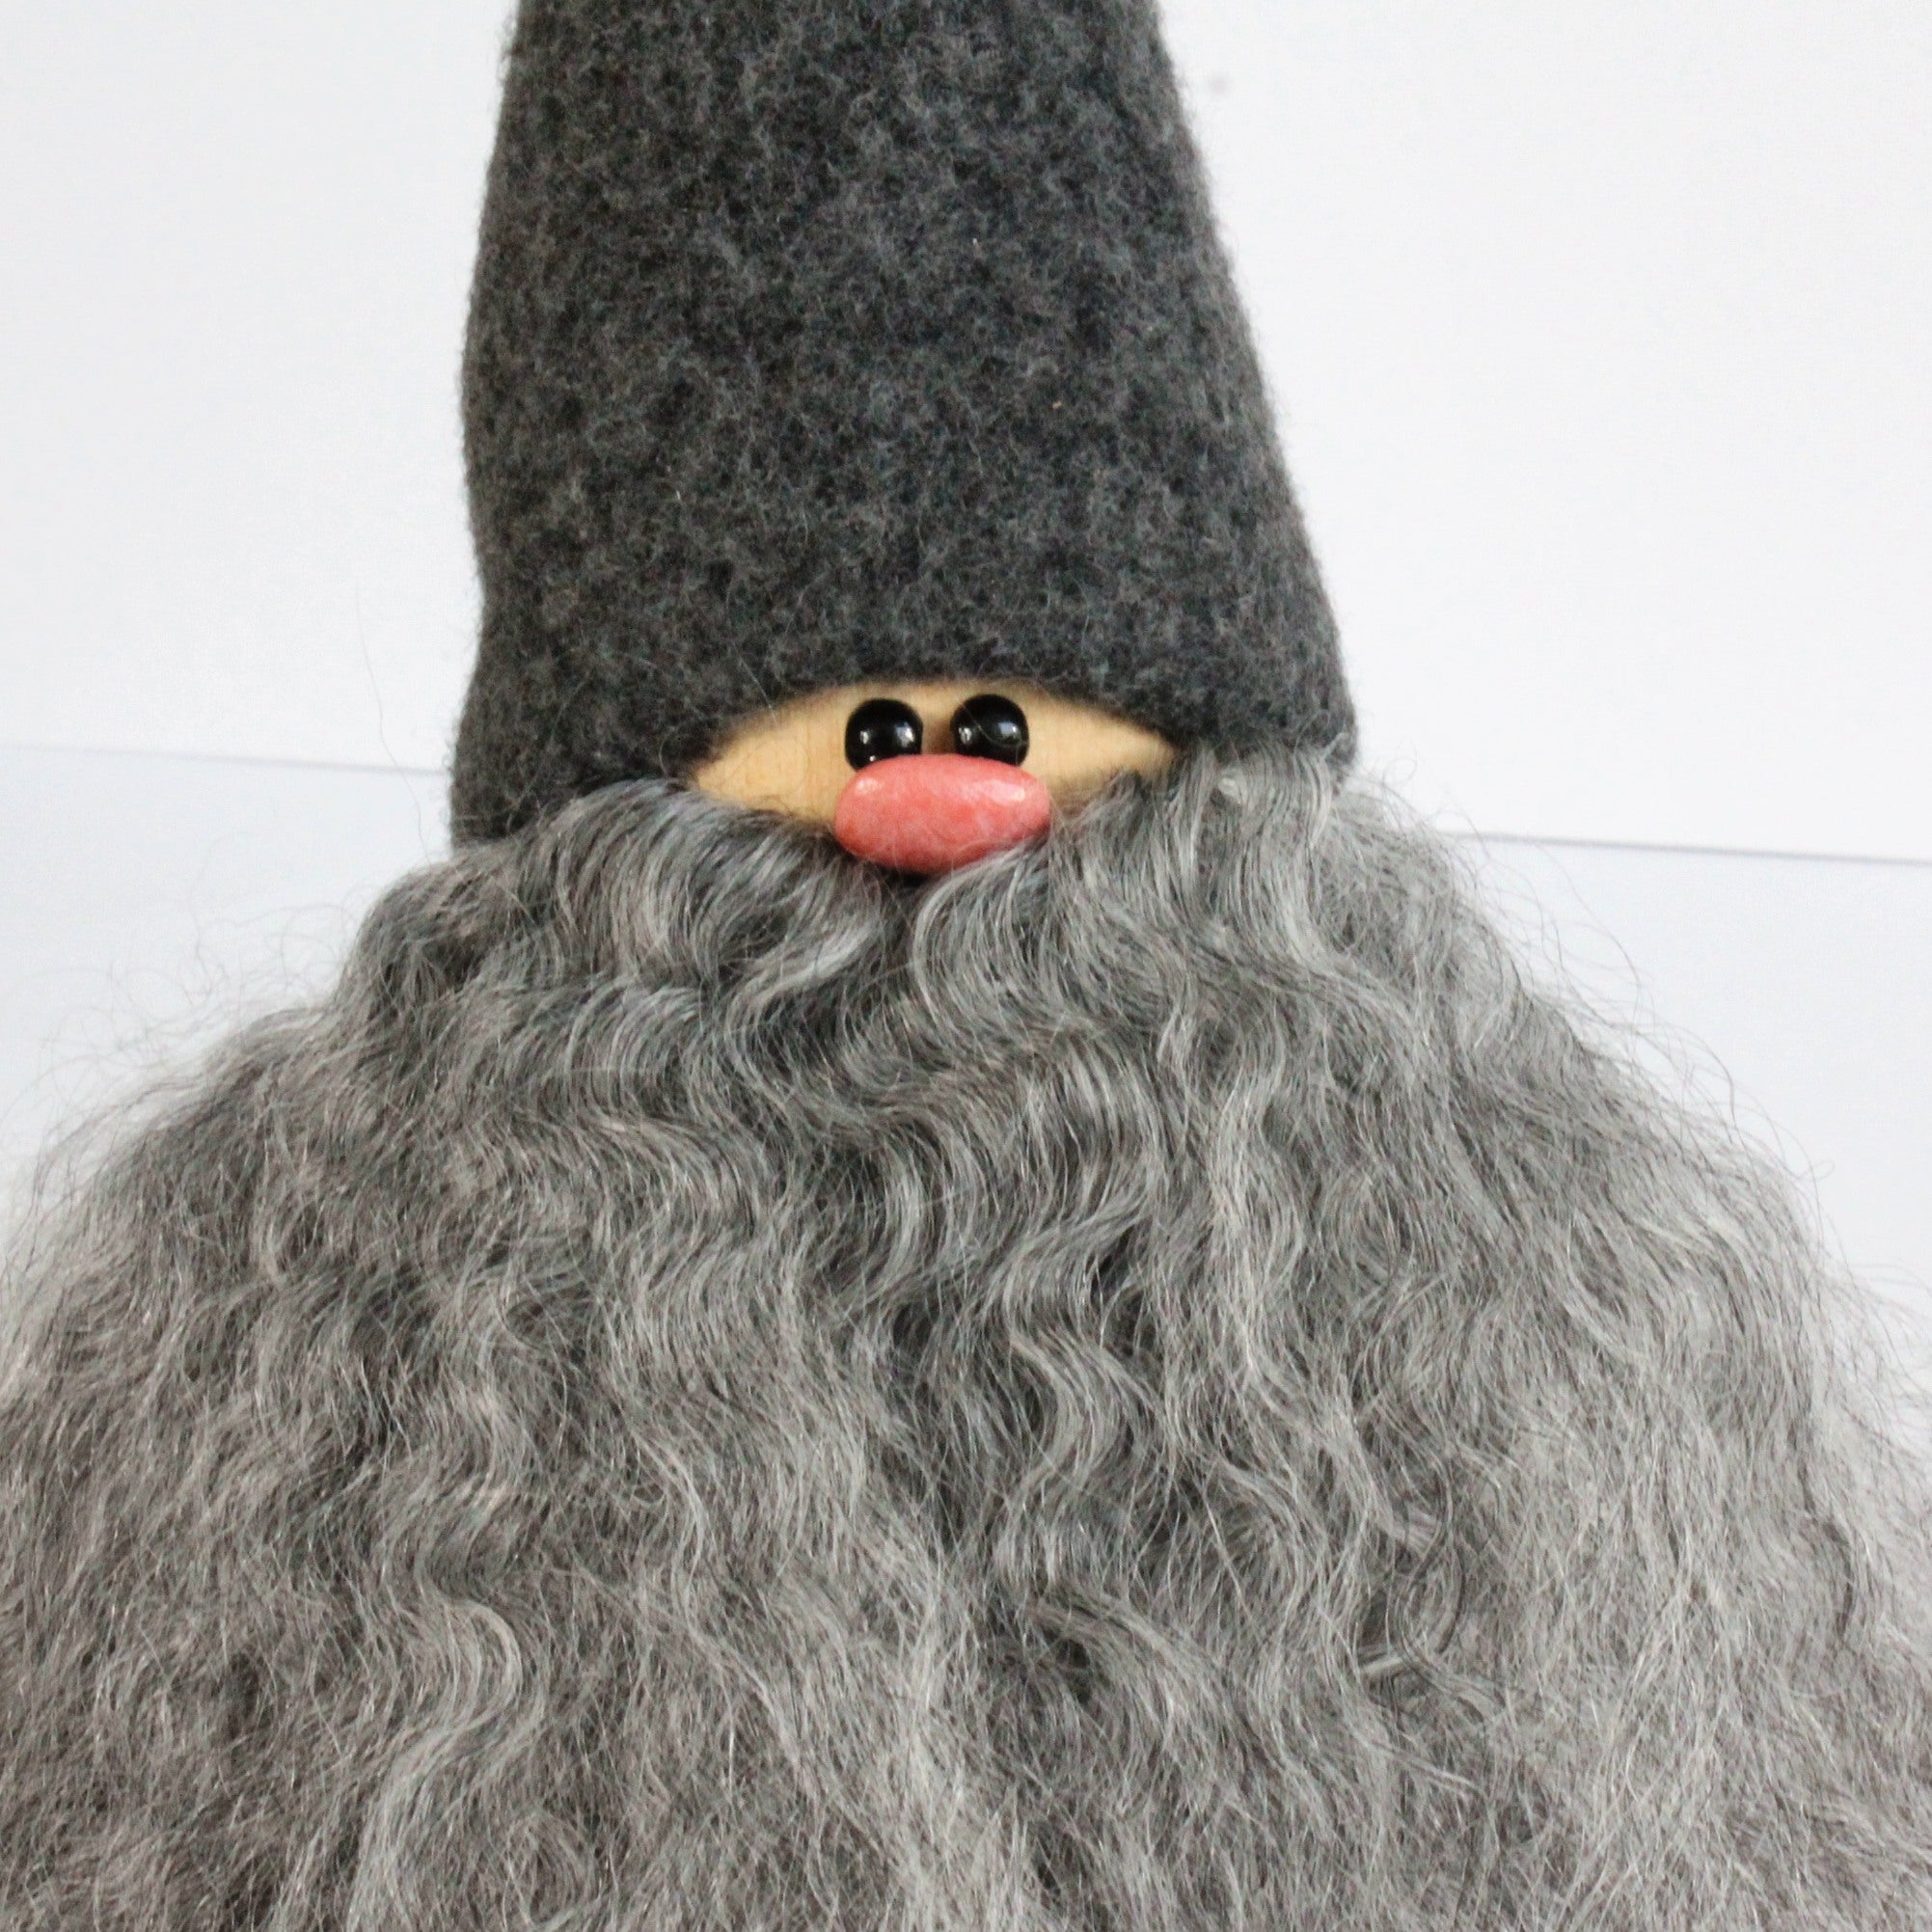 Handmade Santa, grey cap, curly grey beard, sheepskin